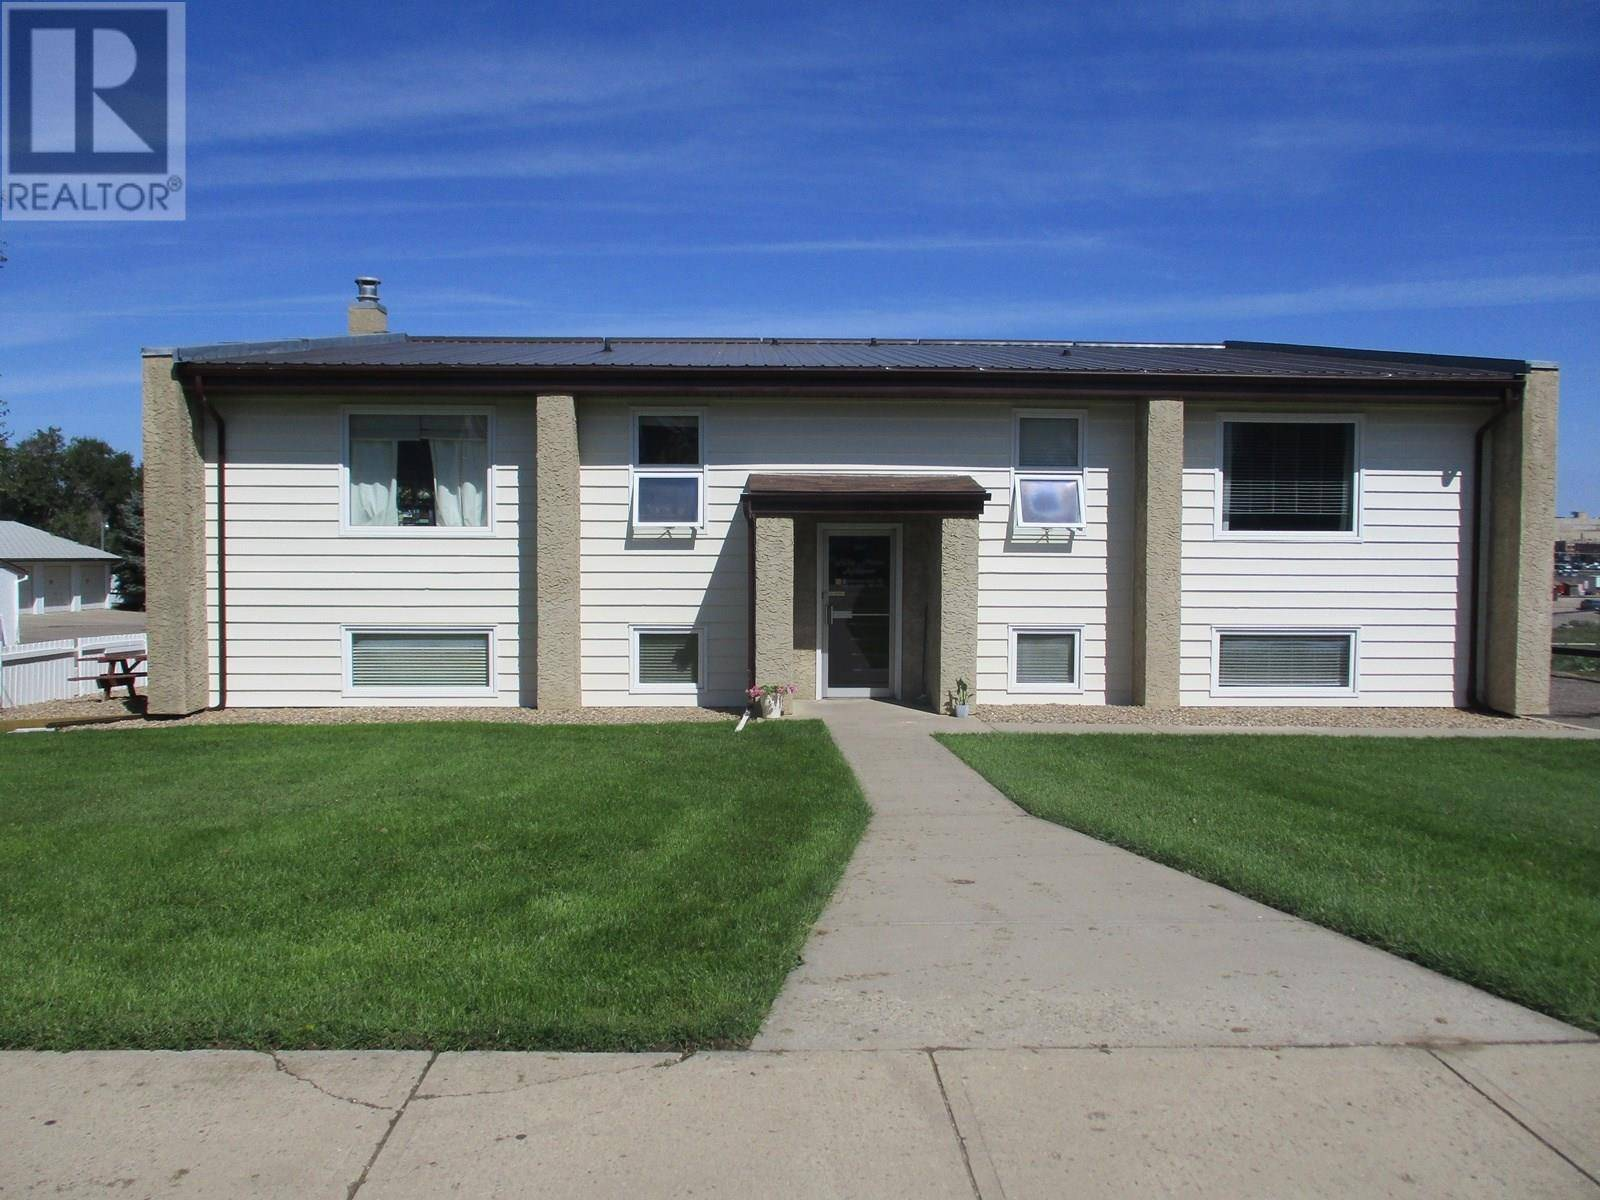 Townhouse for sale at 240 Home St W Moose Jaw Saskatchewan - MLS: SK784253